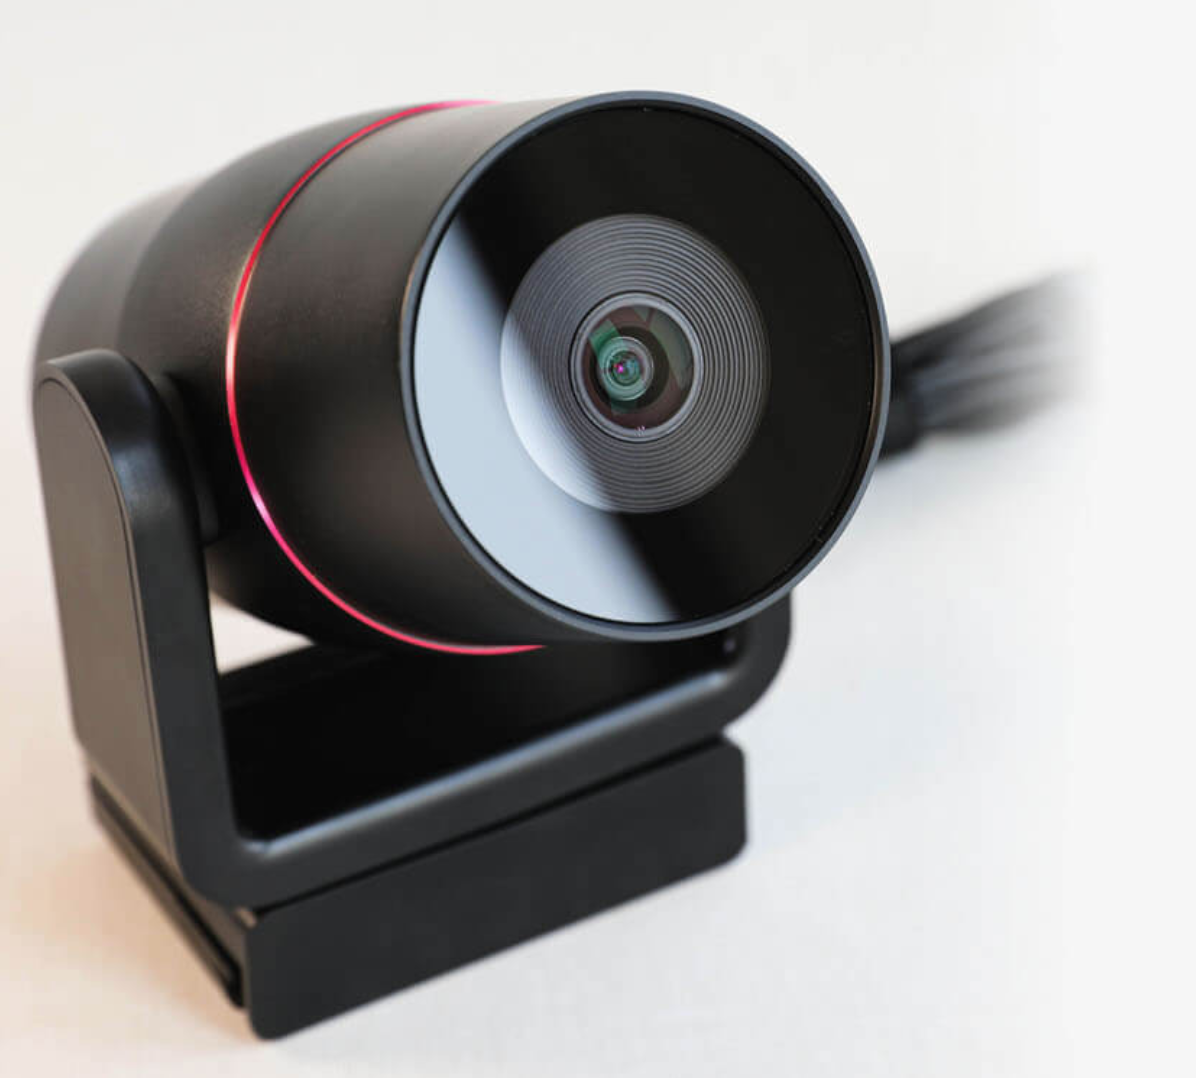 HuddlePair USB camera